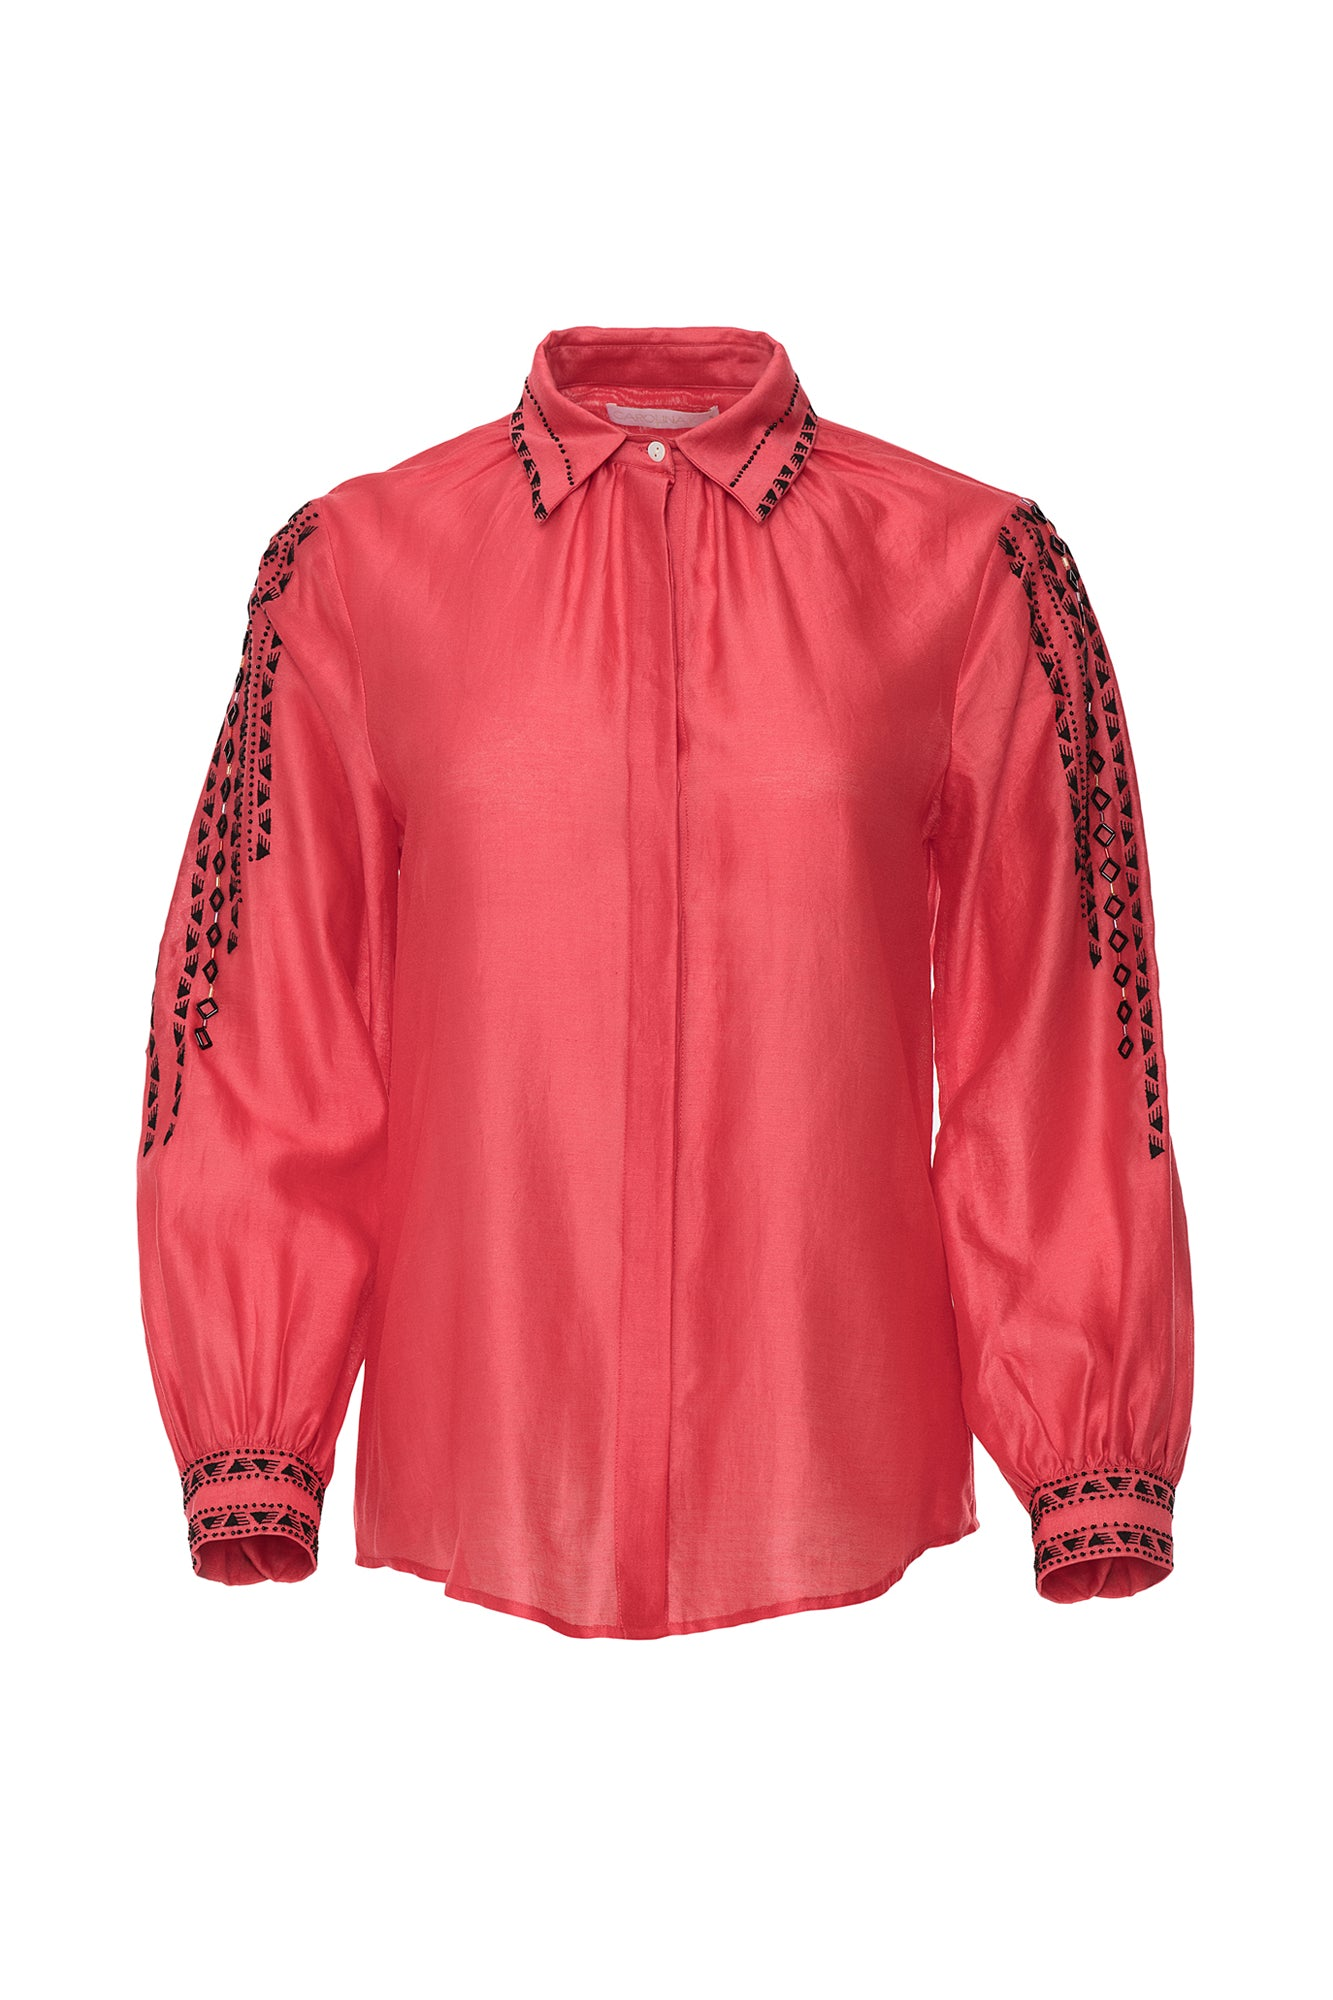 Carolina K Eden Blouse Red